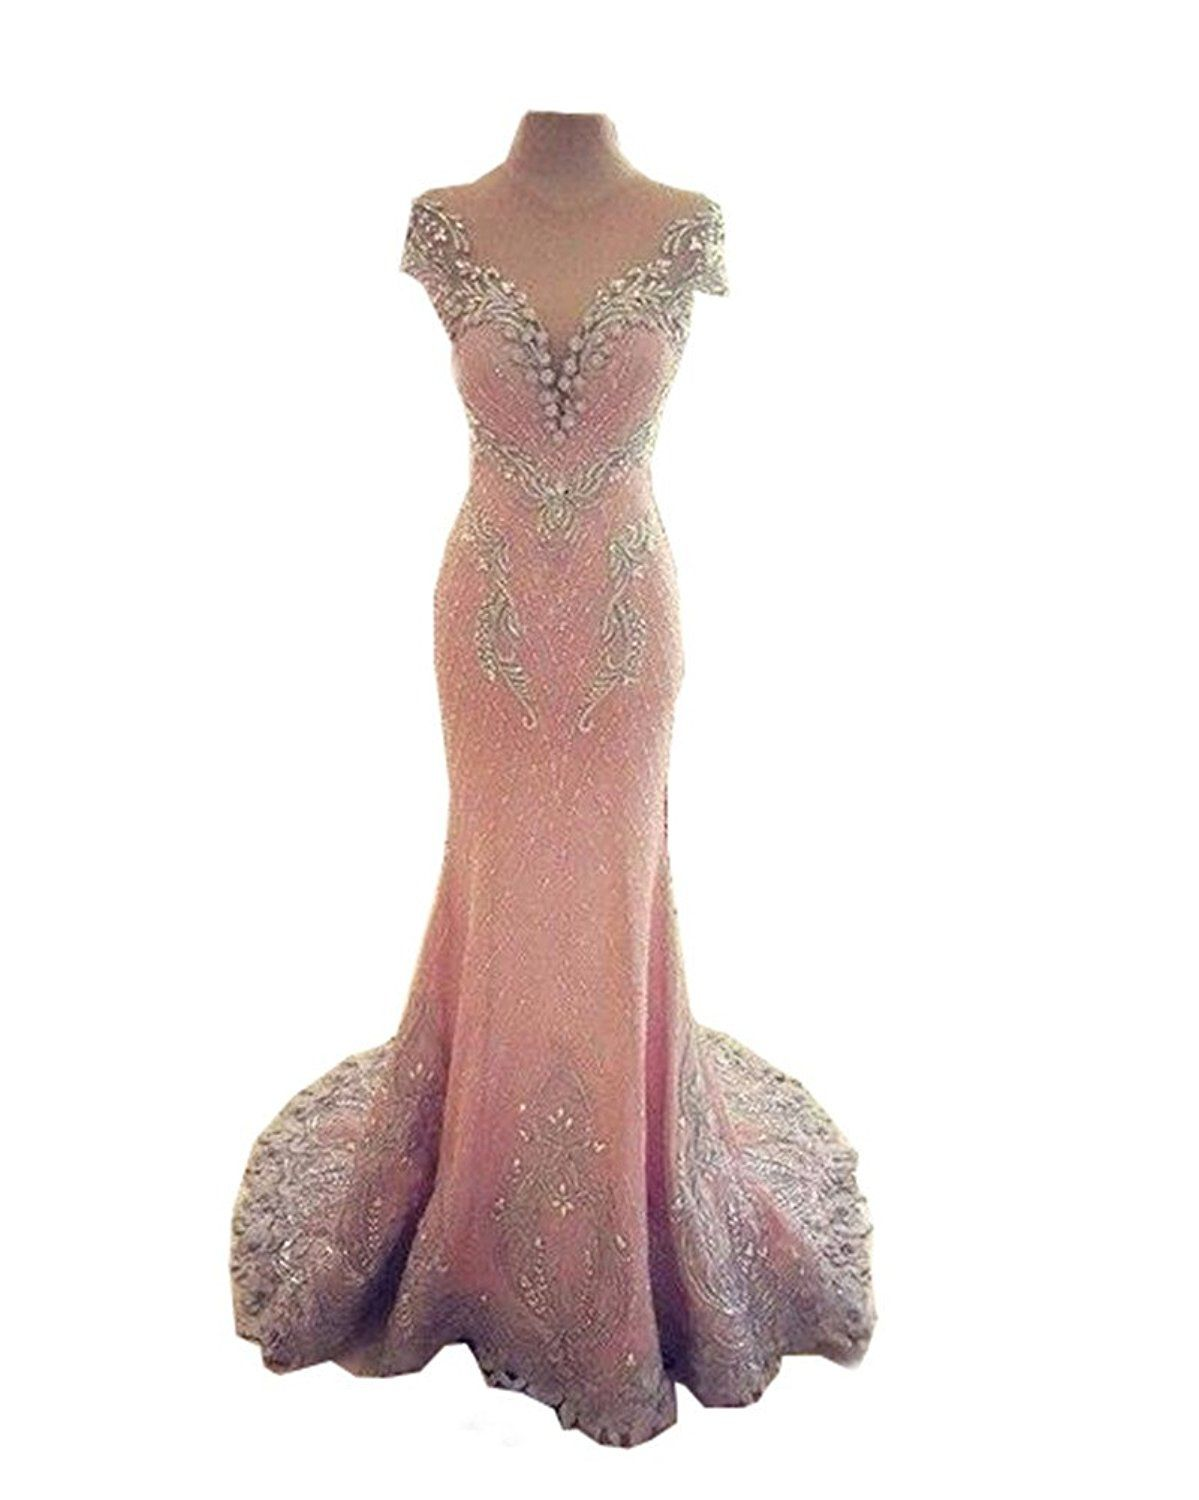 Mermaid prom dress in a variety of shades see through back train